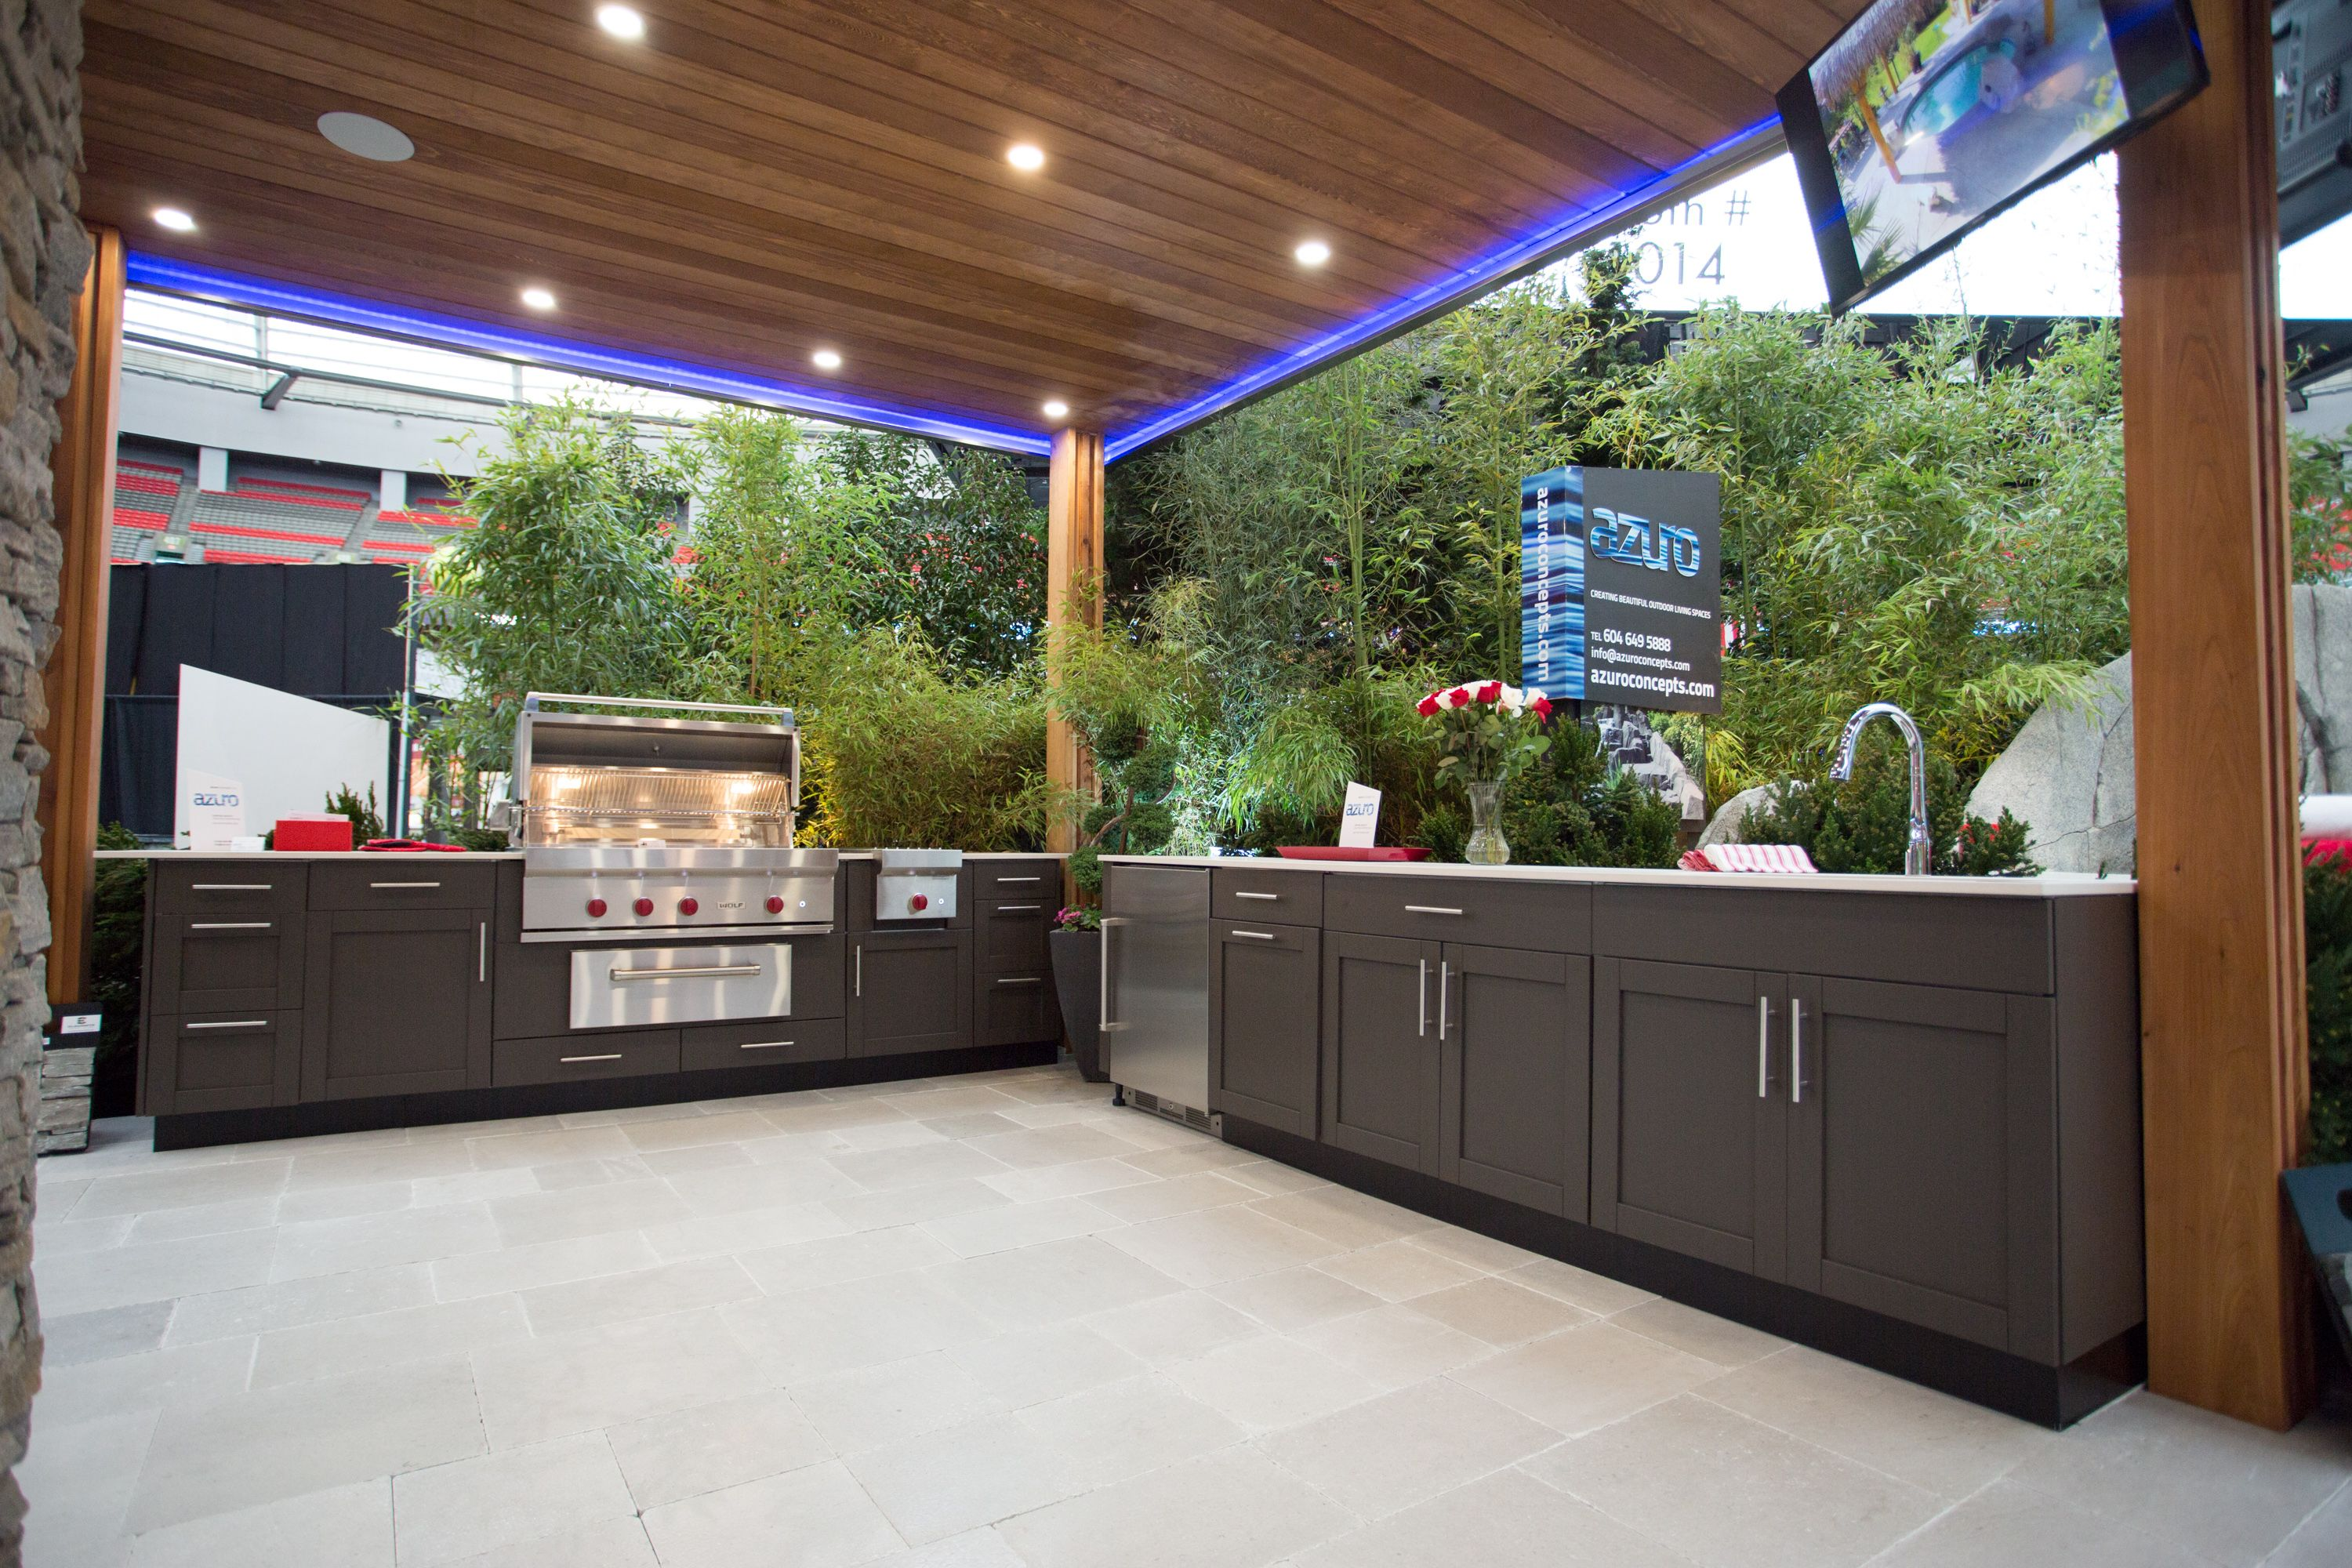 Pin By John David Powell On Outdoor Ideas In 2020 Outdoor Kitchen Design Outdoor Kitchen Countertops Outdoor Kitchen Cabinets